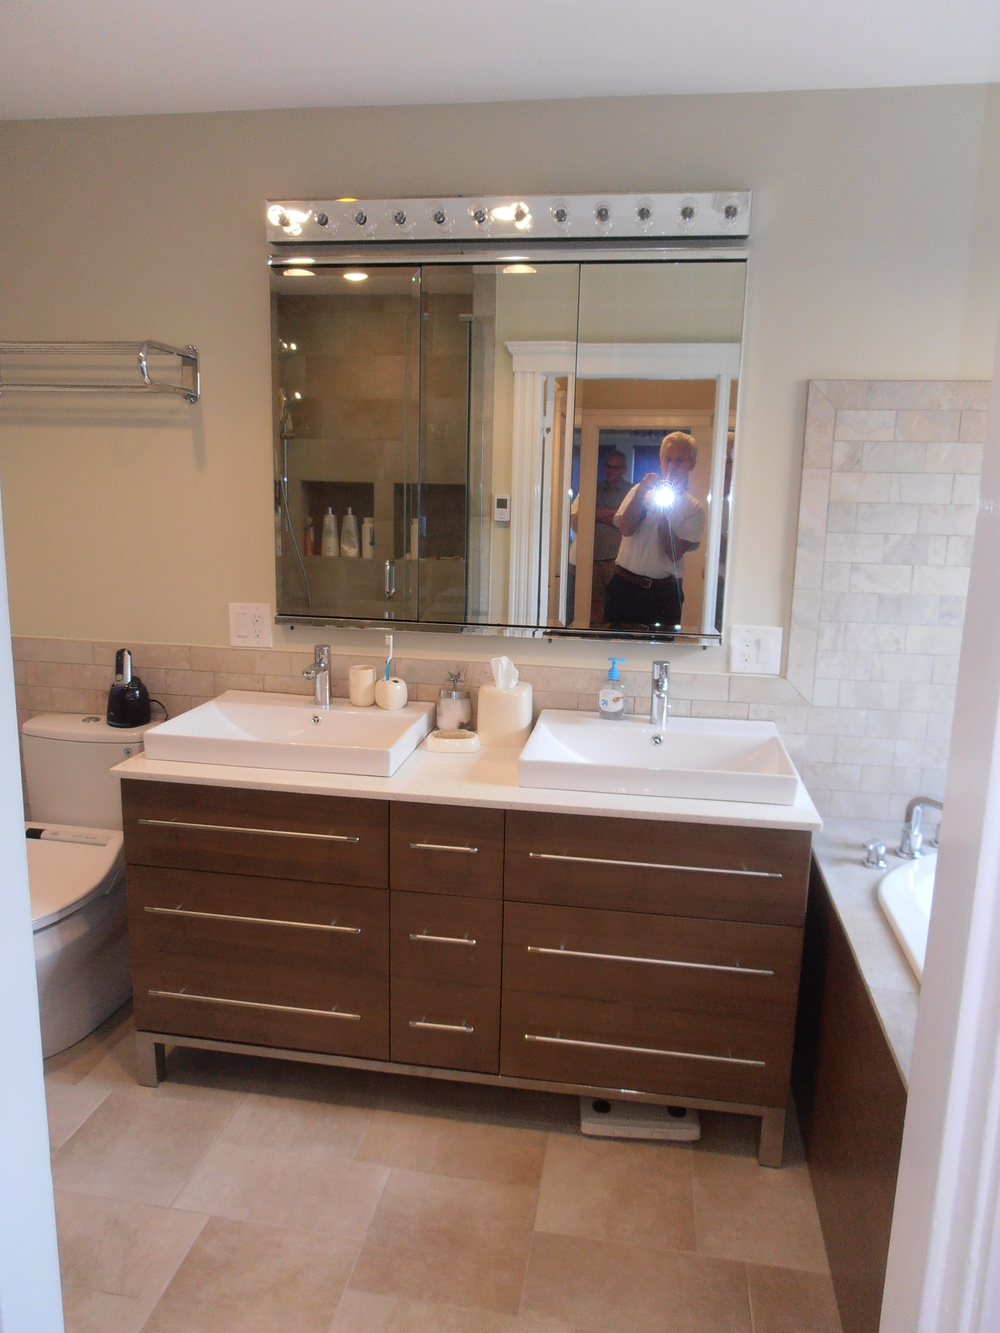 1 Top Mounted Sinks Brookline Williamson.JPG